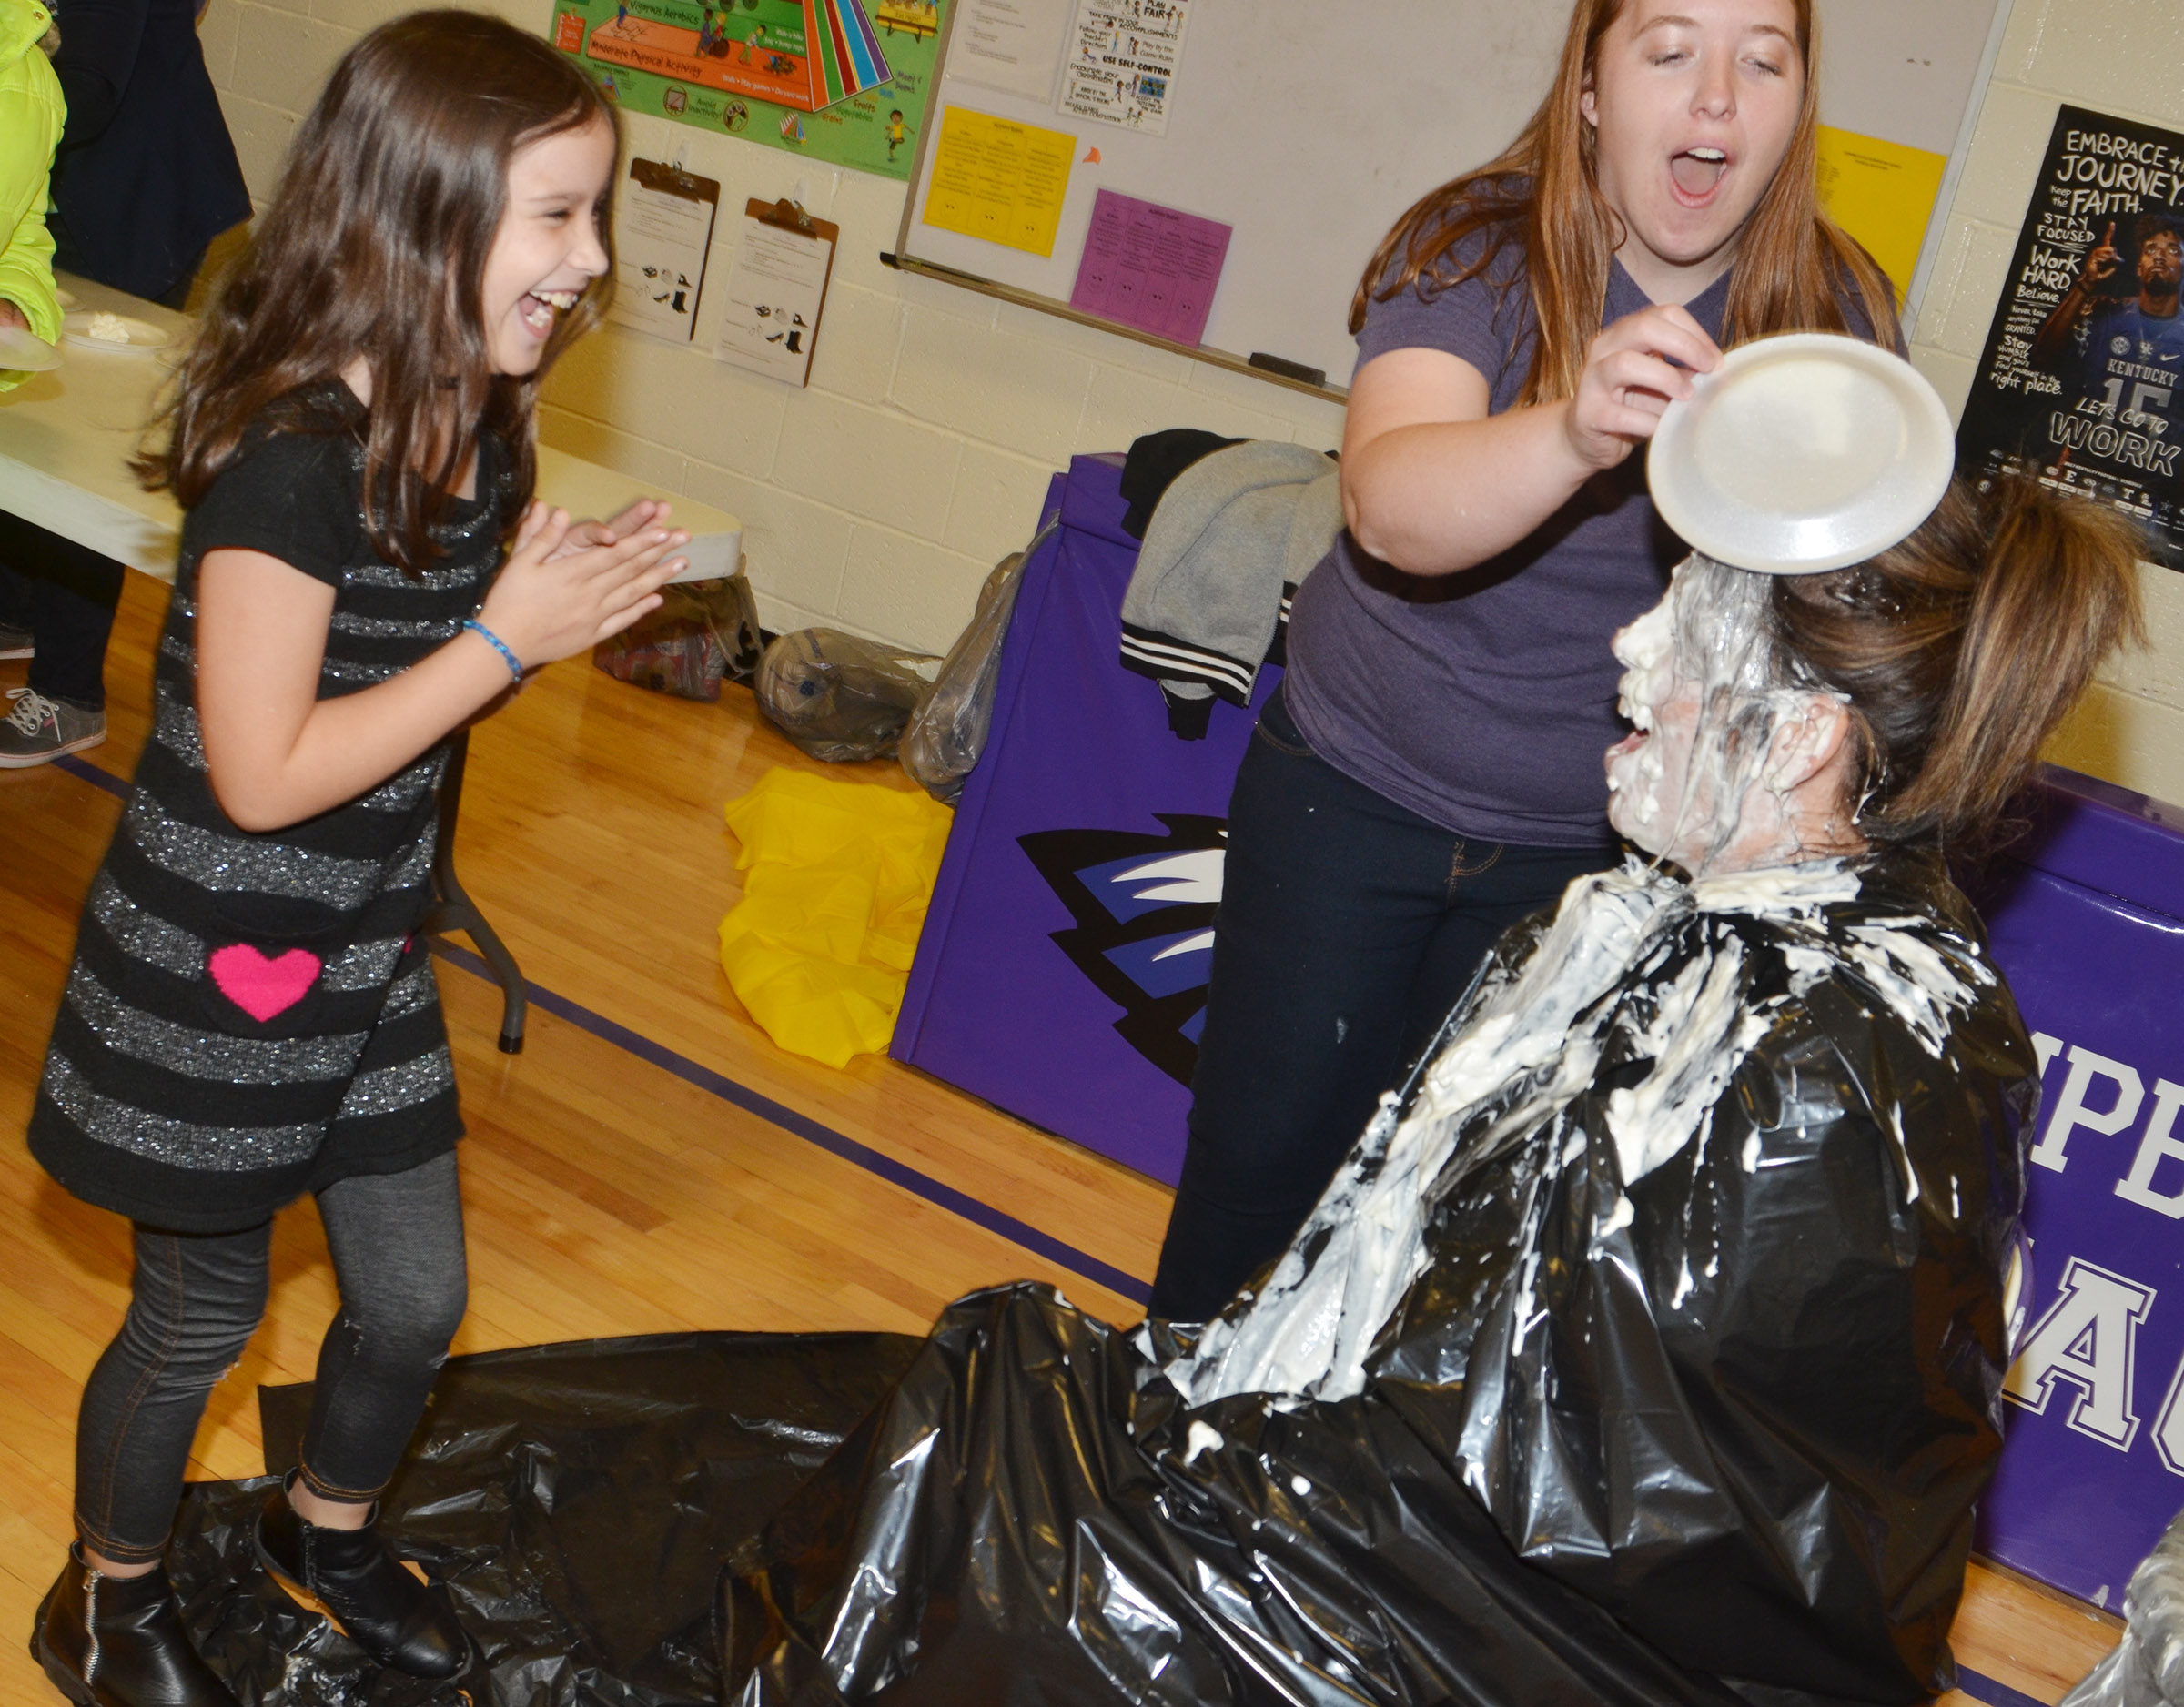 CES fourth-grader Zehavah Negron laughs after hitting Principal Elisha Rhodes with a pie.